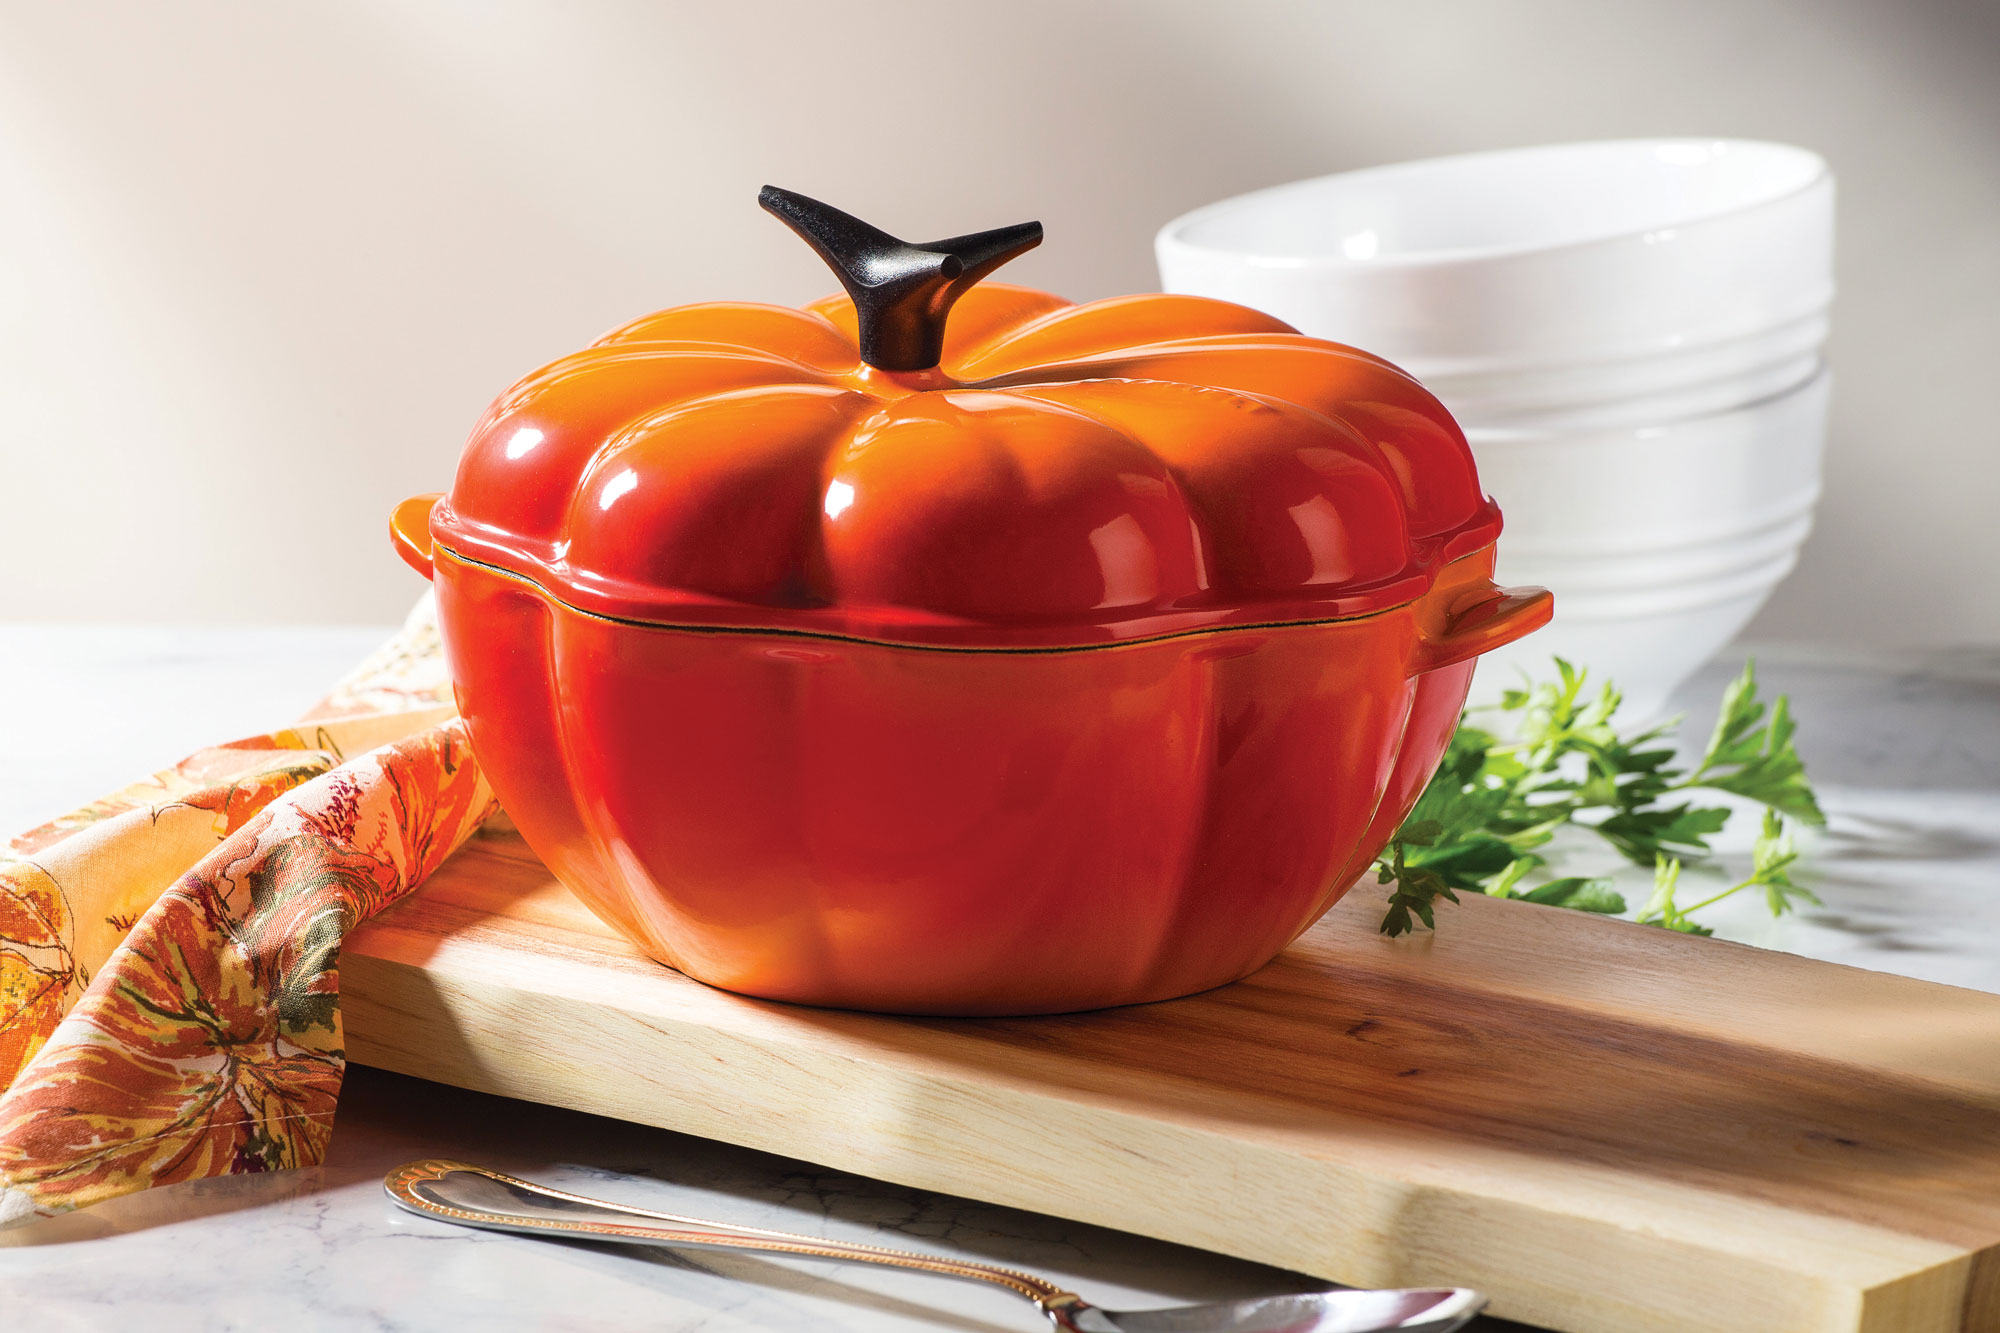 Le Creuset Pumpkin Ovens On Sale Cutlery And More